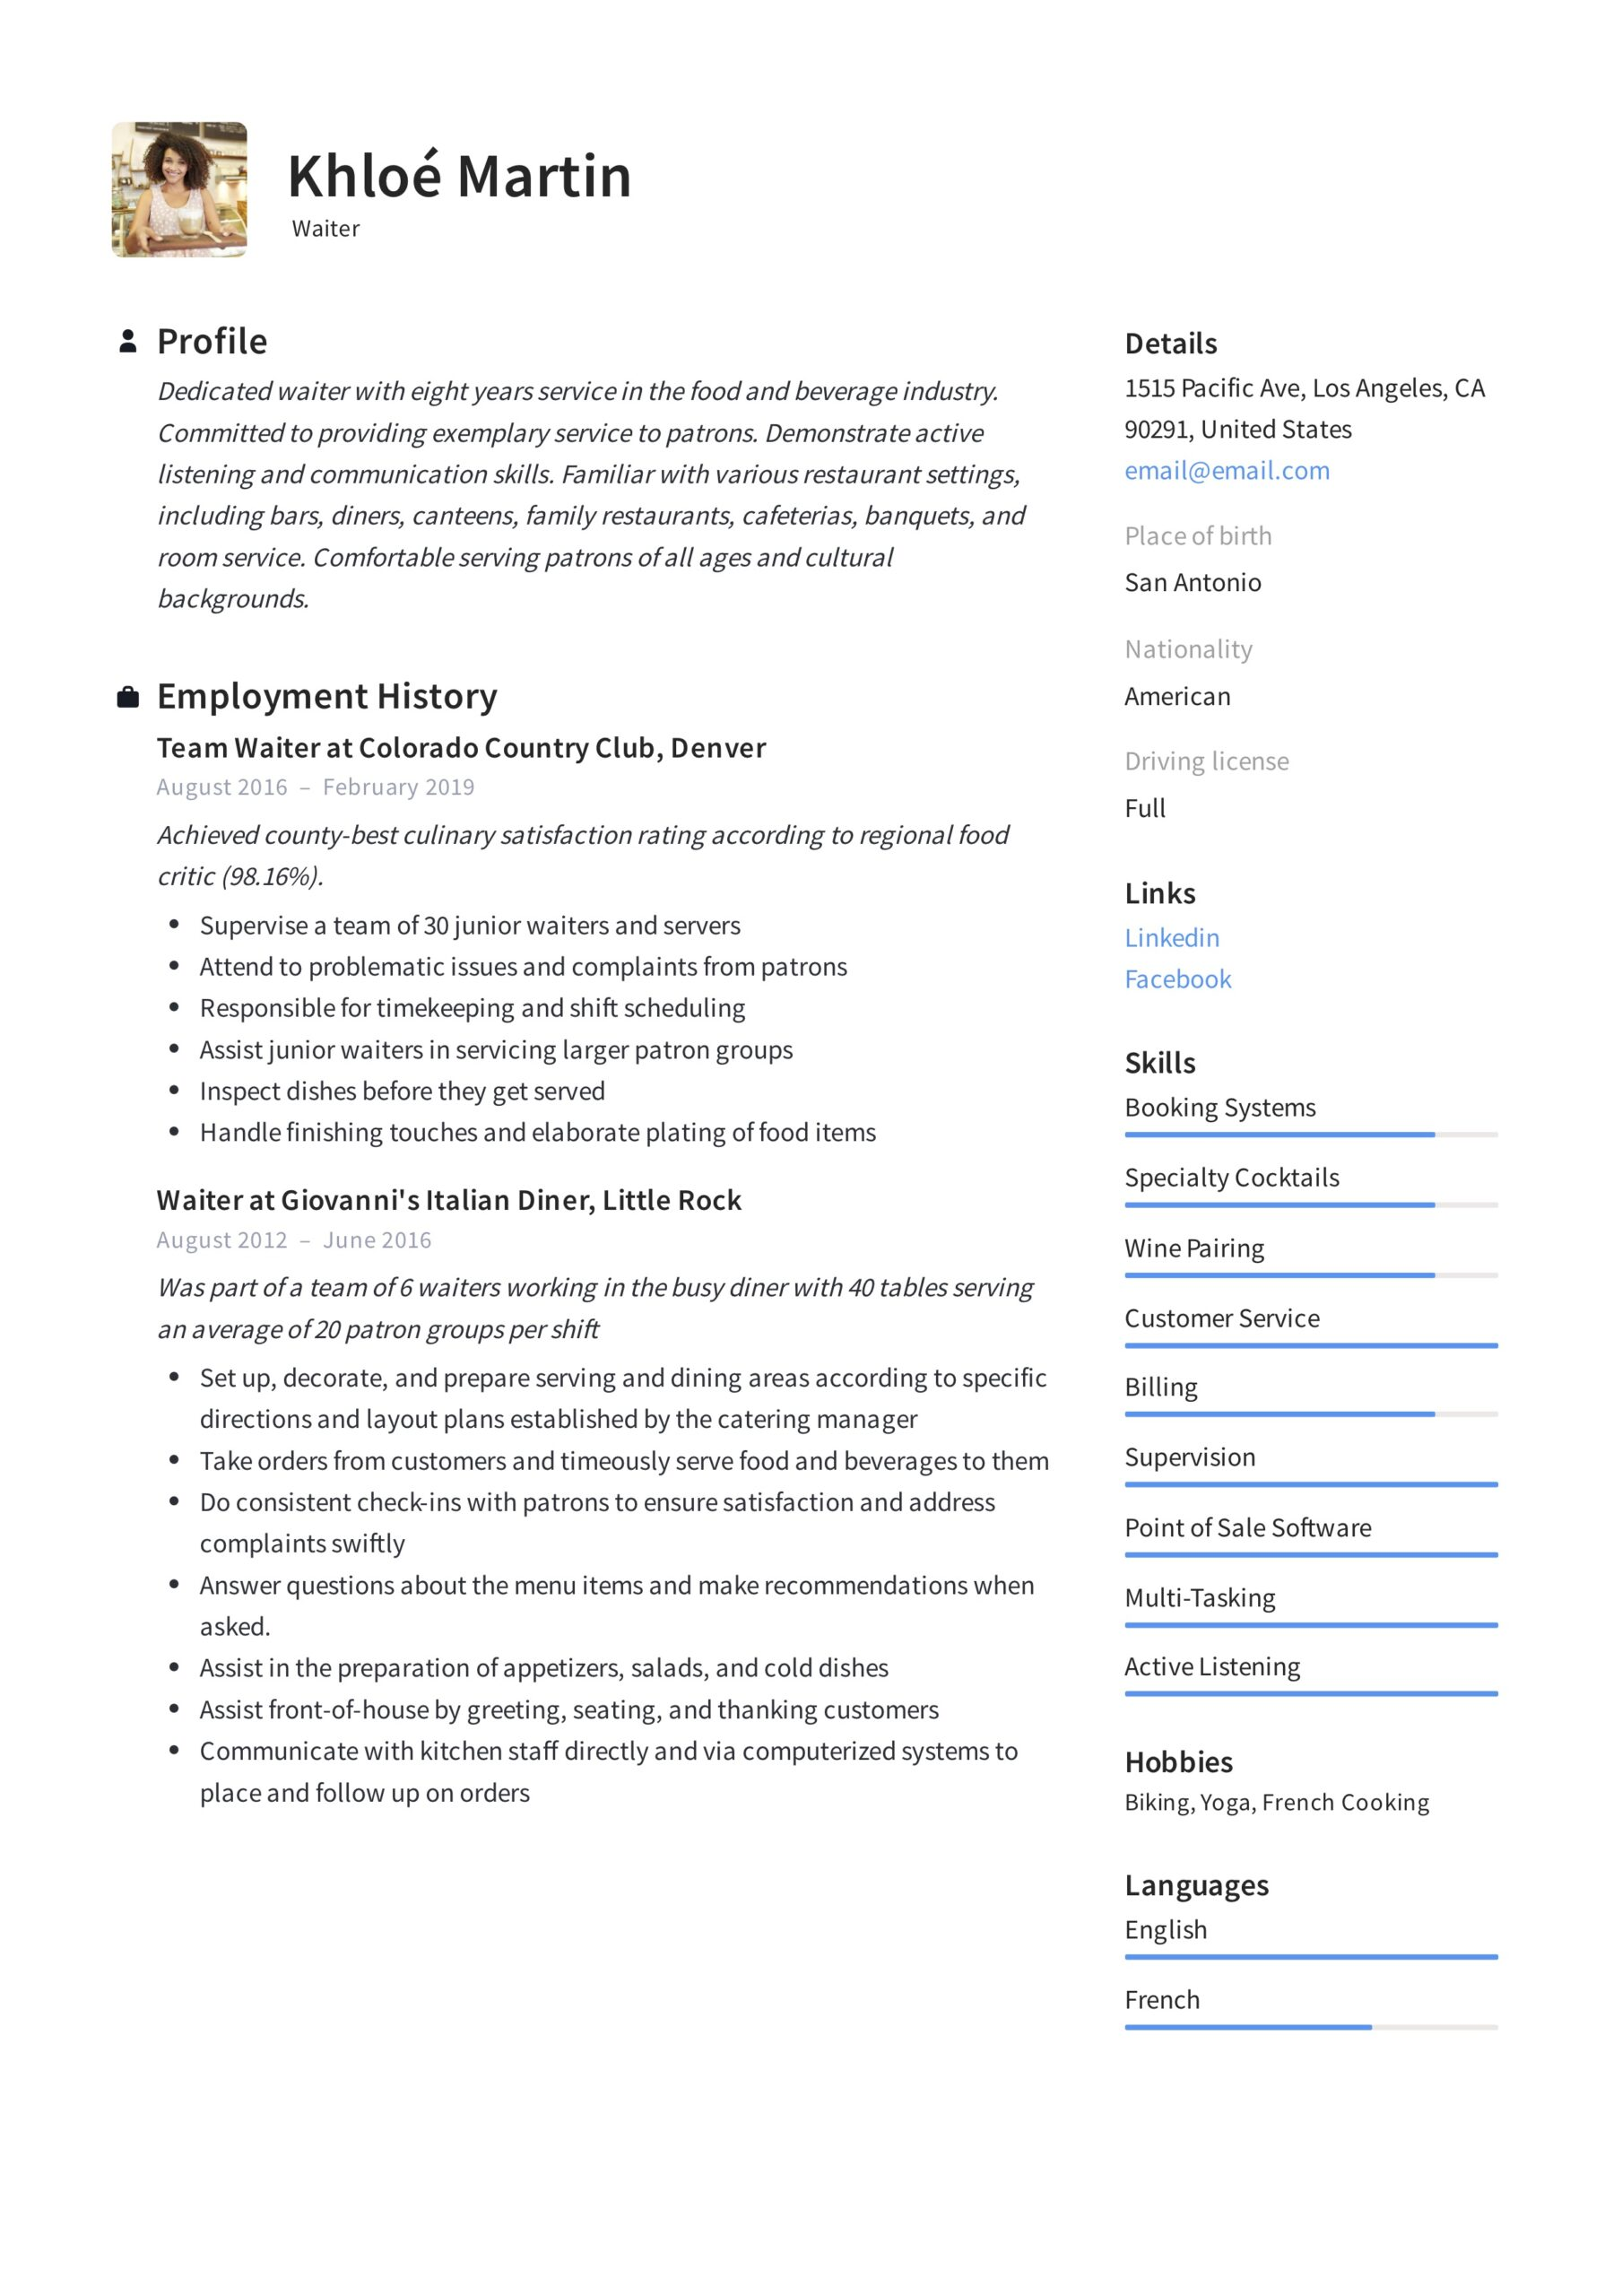 waiter resume writing guide samples pdf skills for waitress on example diversity and Resume Skills For Waitress On Resume